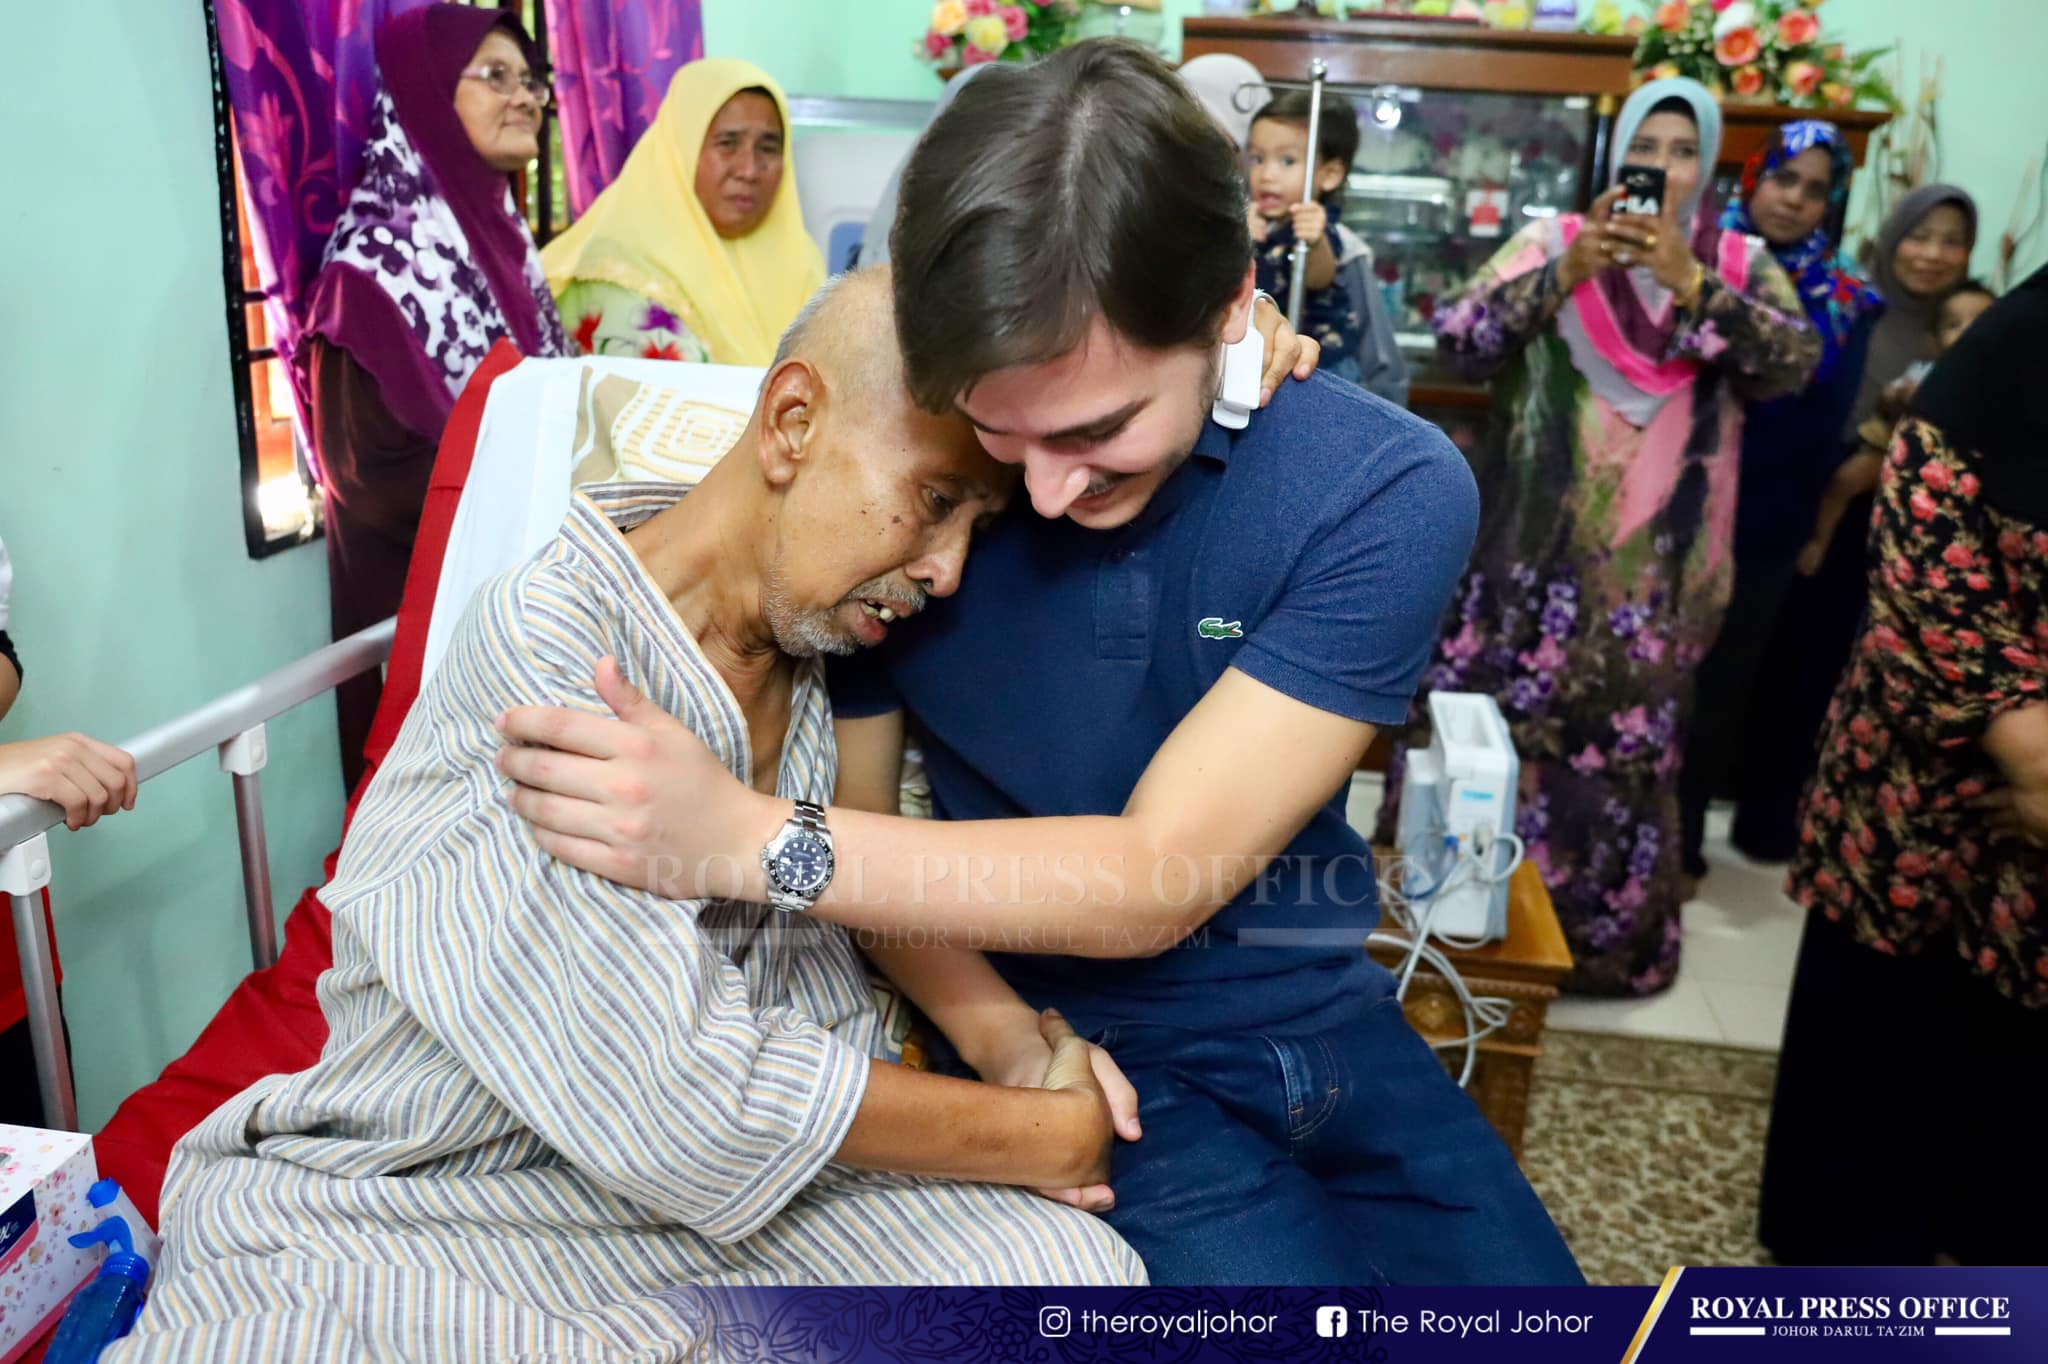 Johor Princess Who Lost Brother To Cancer Pays Under One